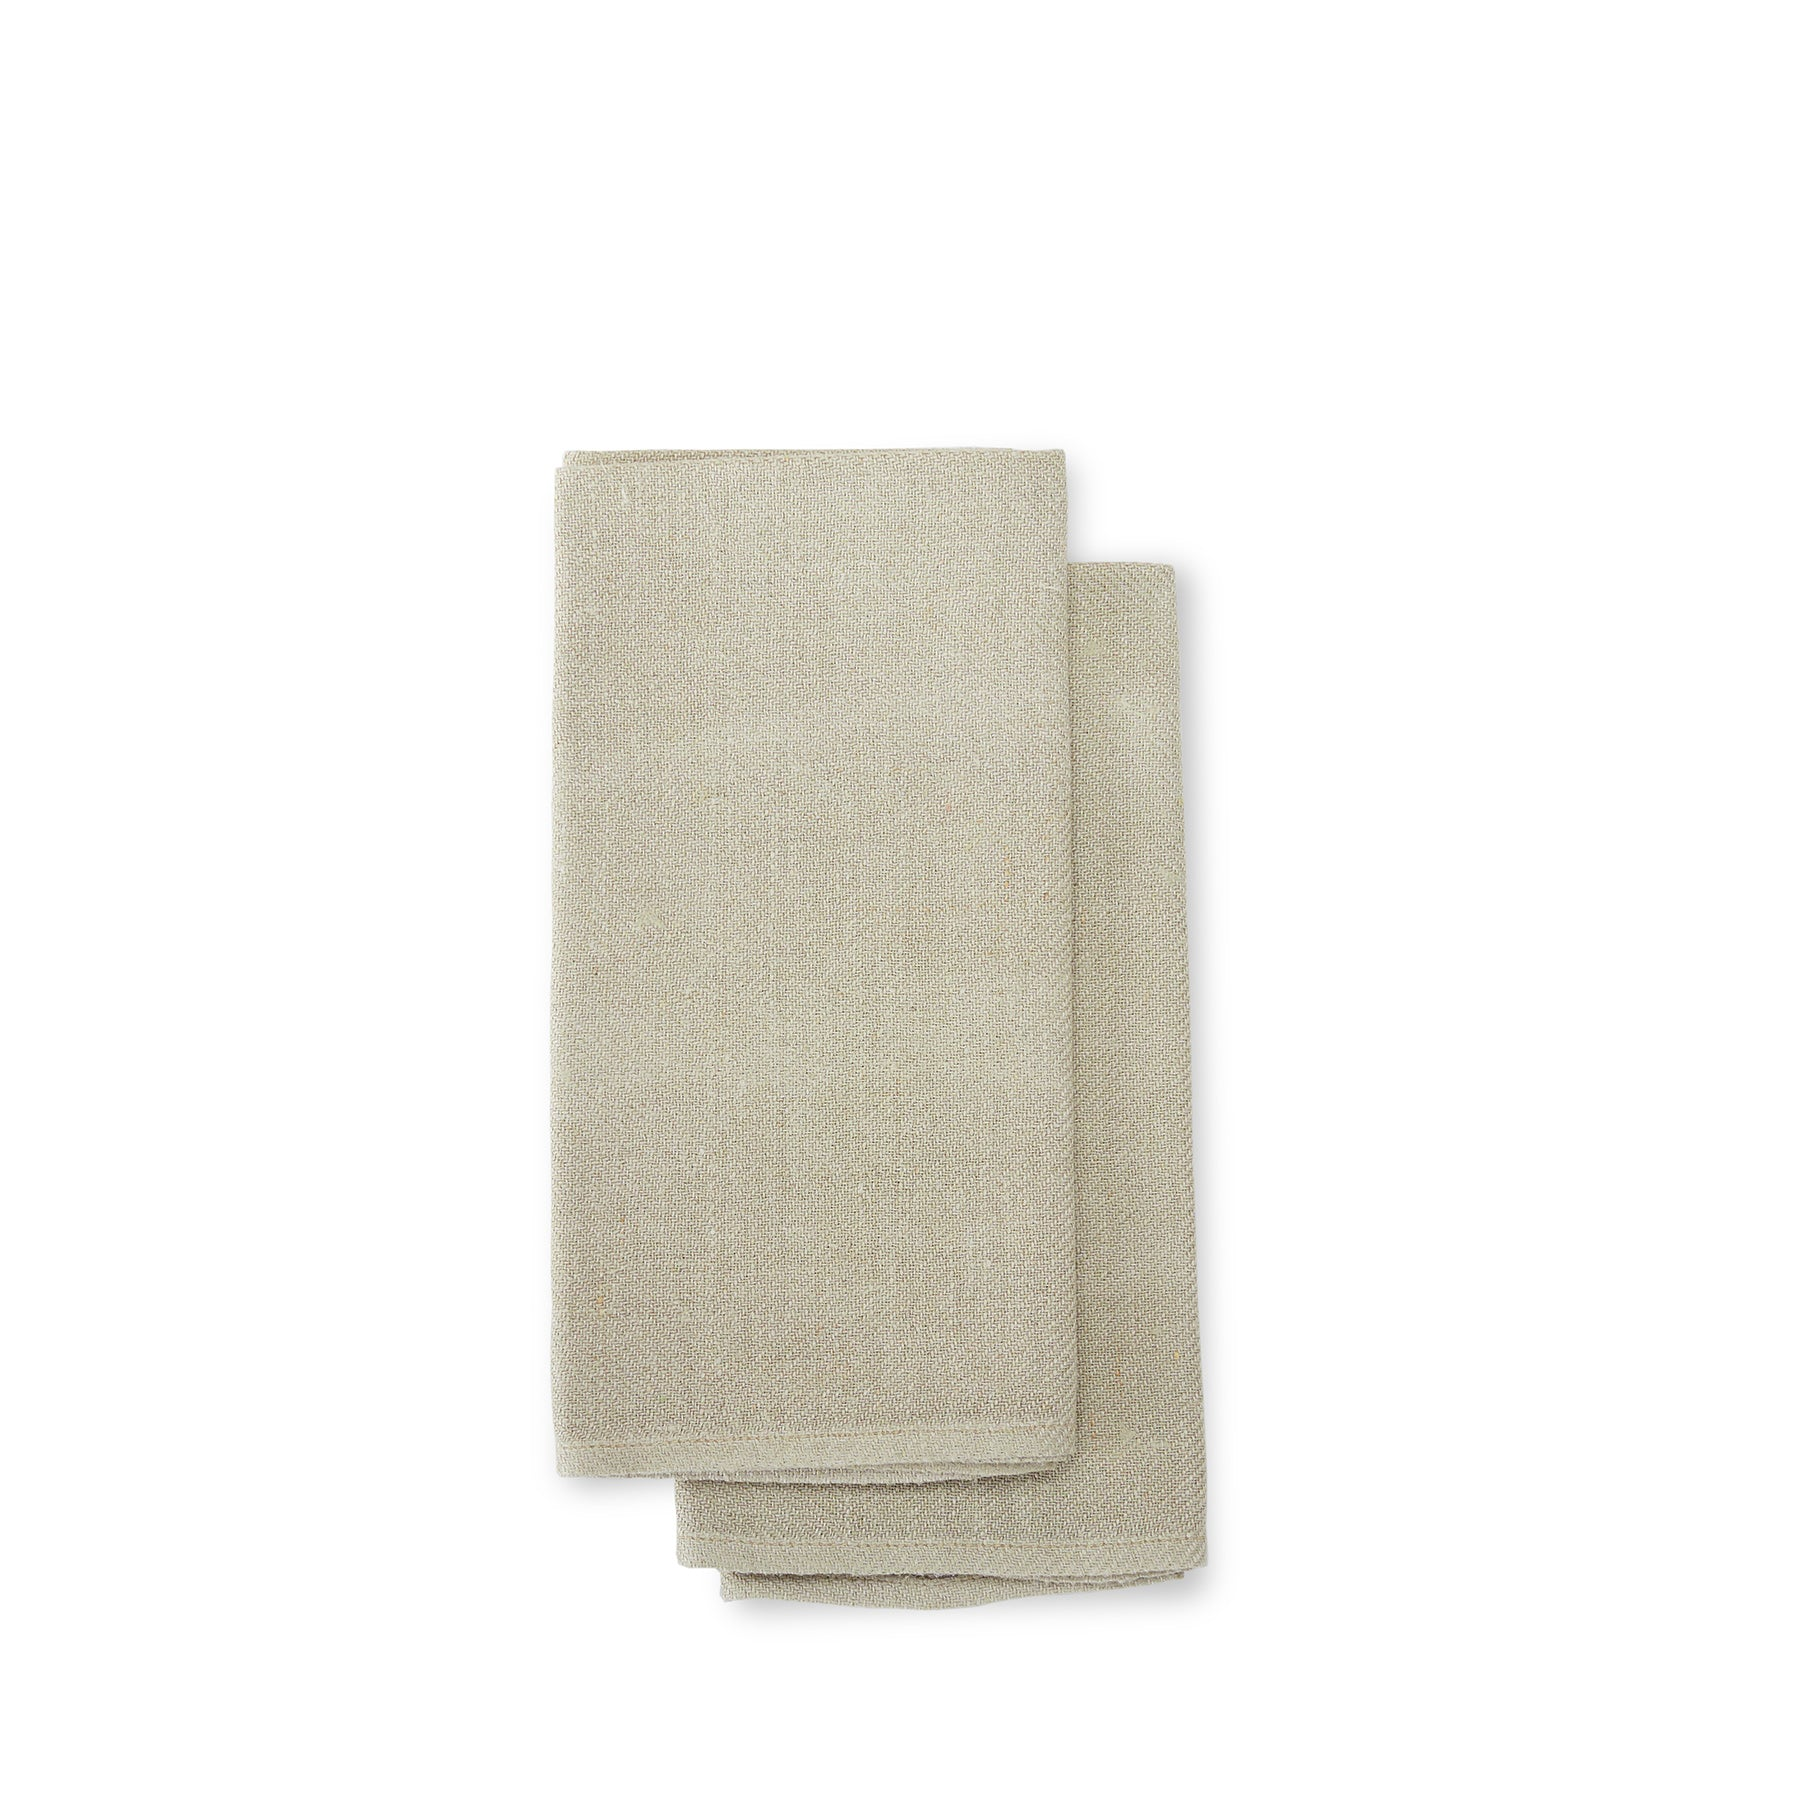 Kypert Napkins in Unbleached (Set of 2) Zoom Image 1